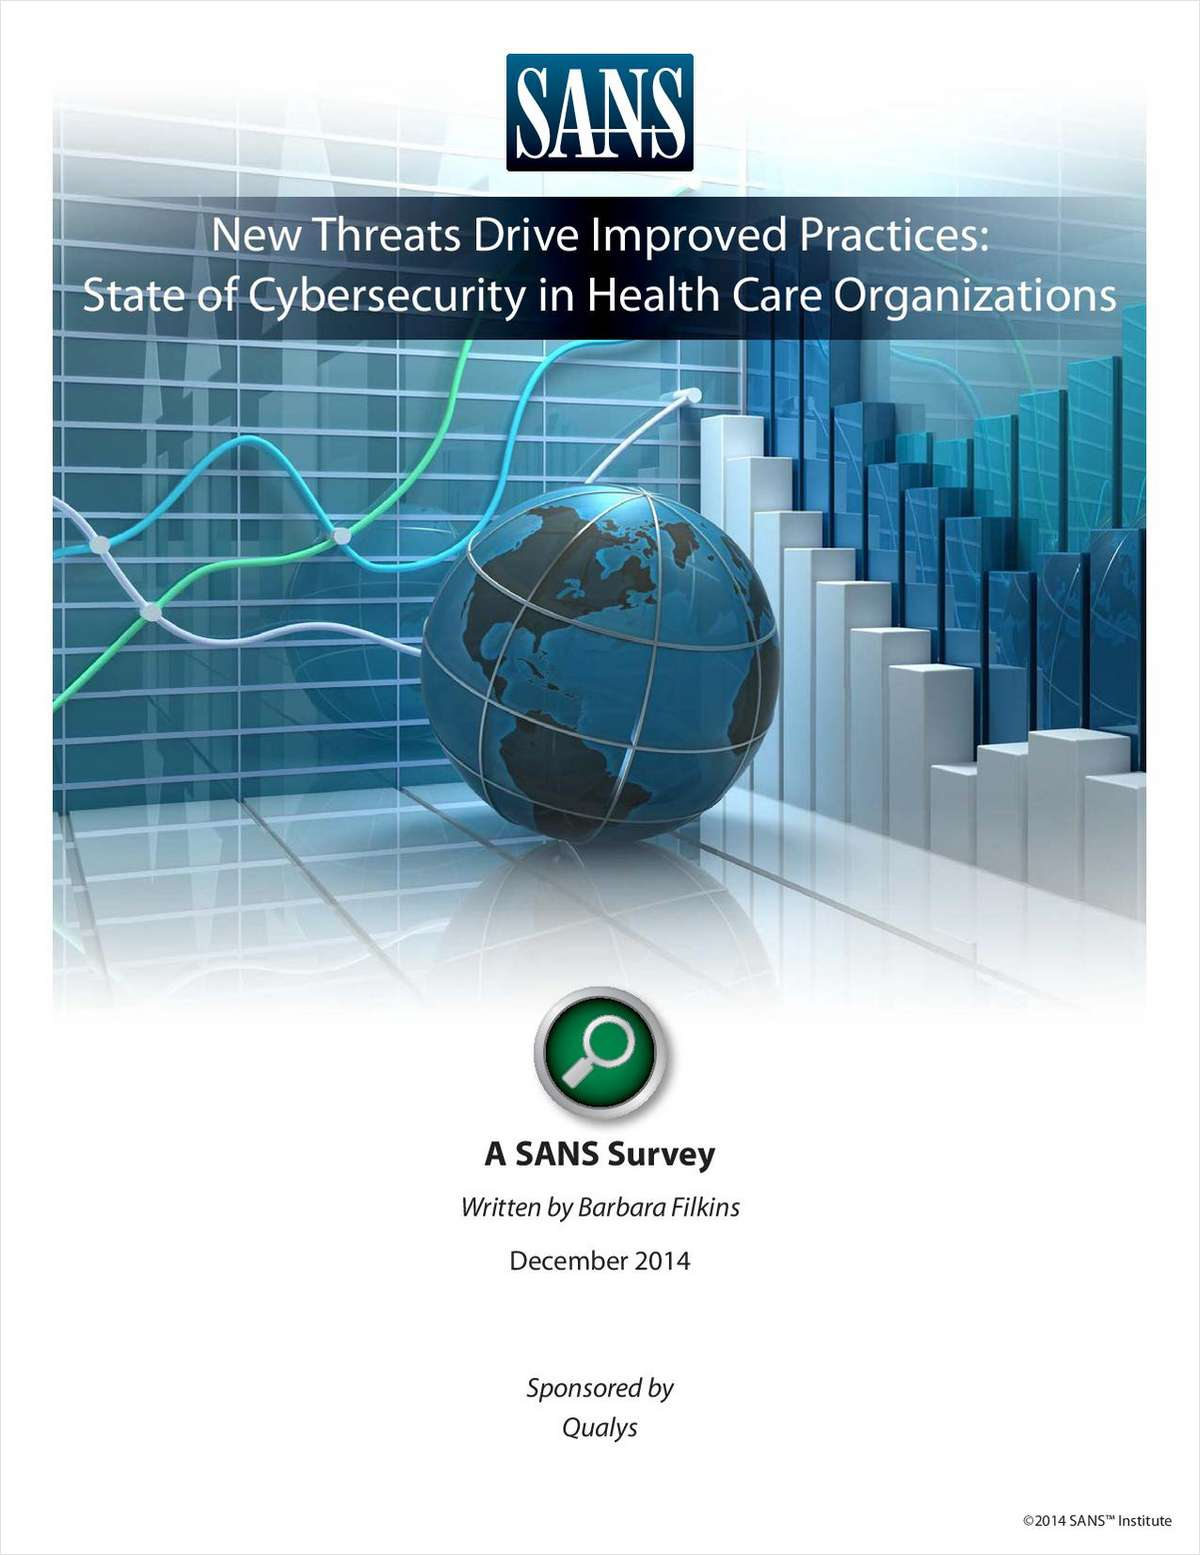 State of Cybersecurity in Health Care Organizations